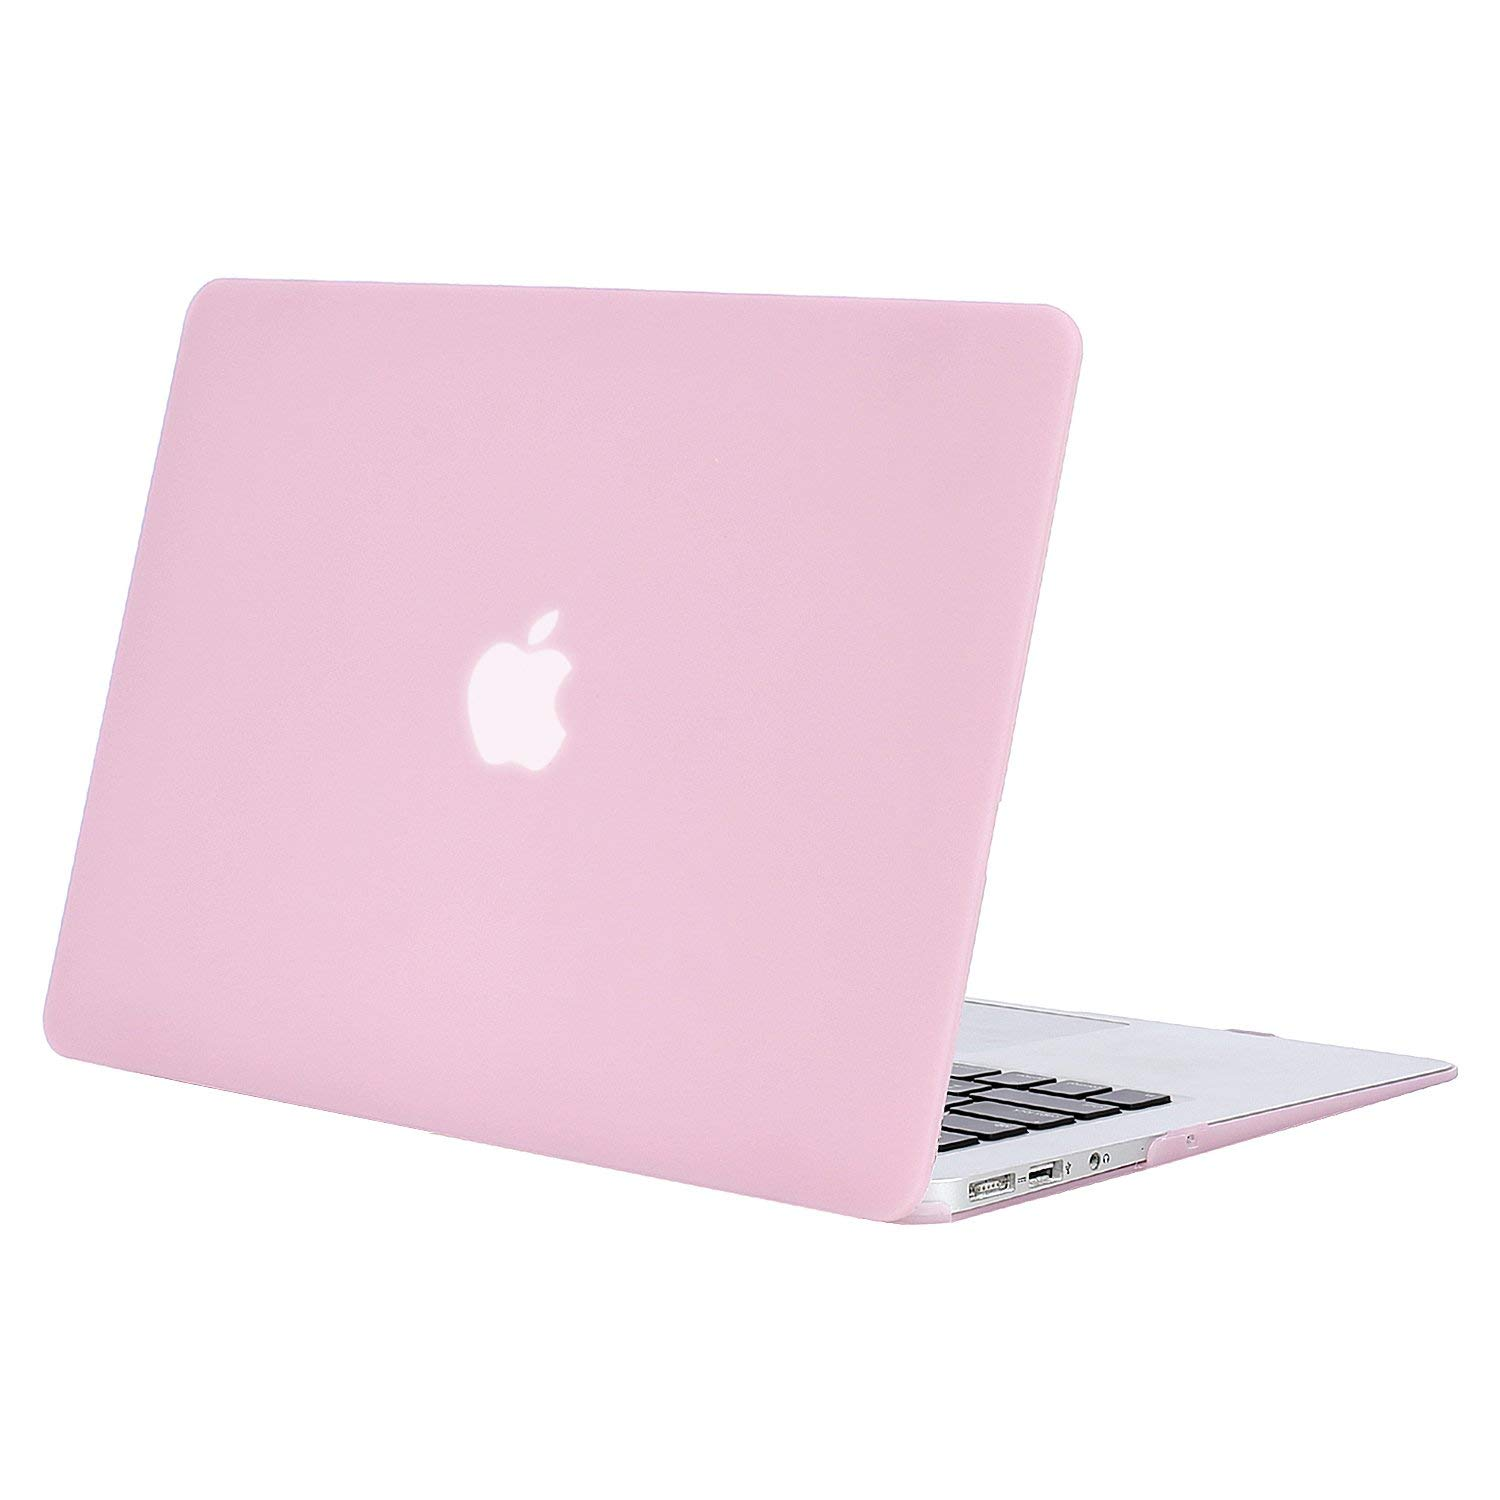 "Codegen Apple 13"" 13 inc Macbook Pro Retina A1502 A1425 Pembe Kılıf Kapak CMPR-133P"